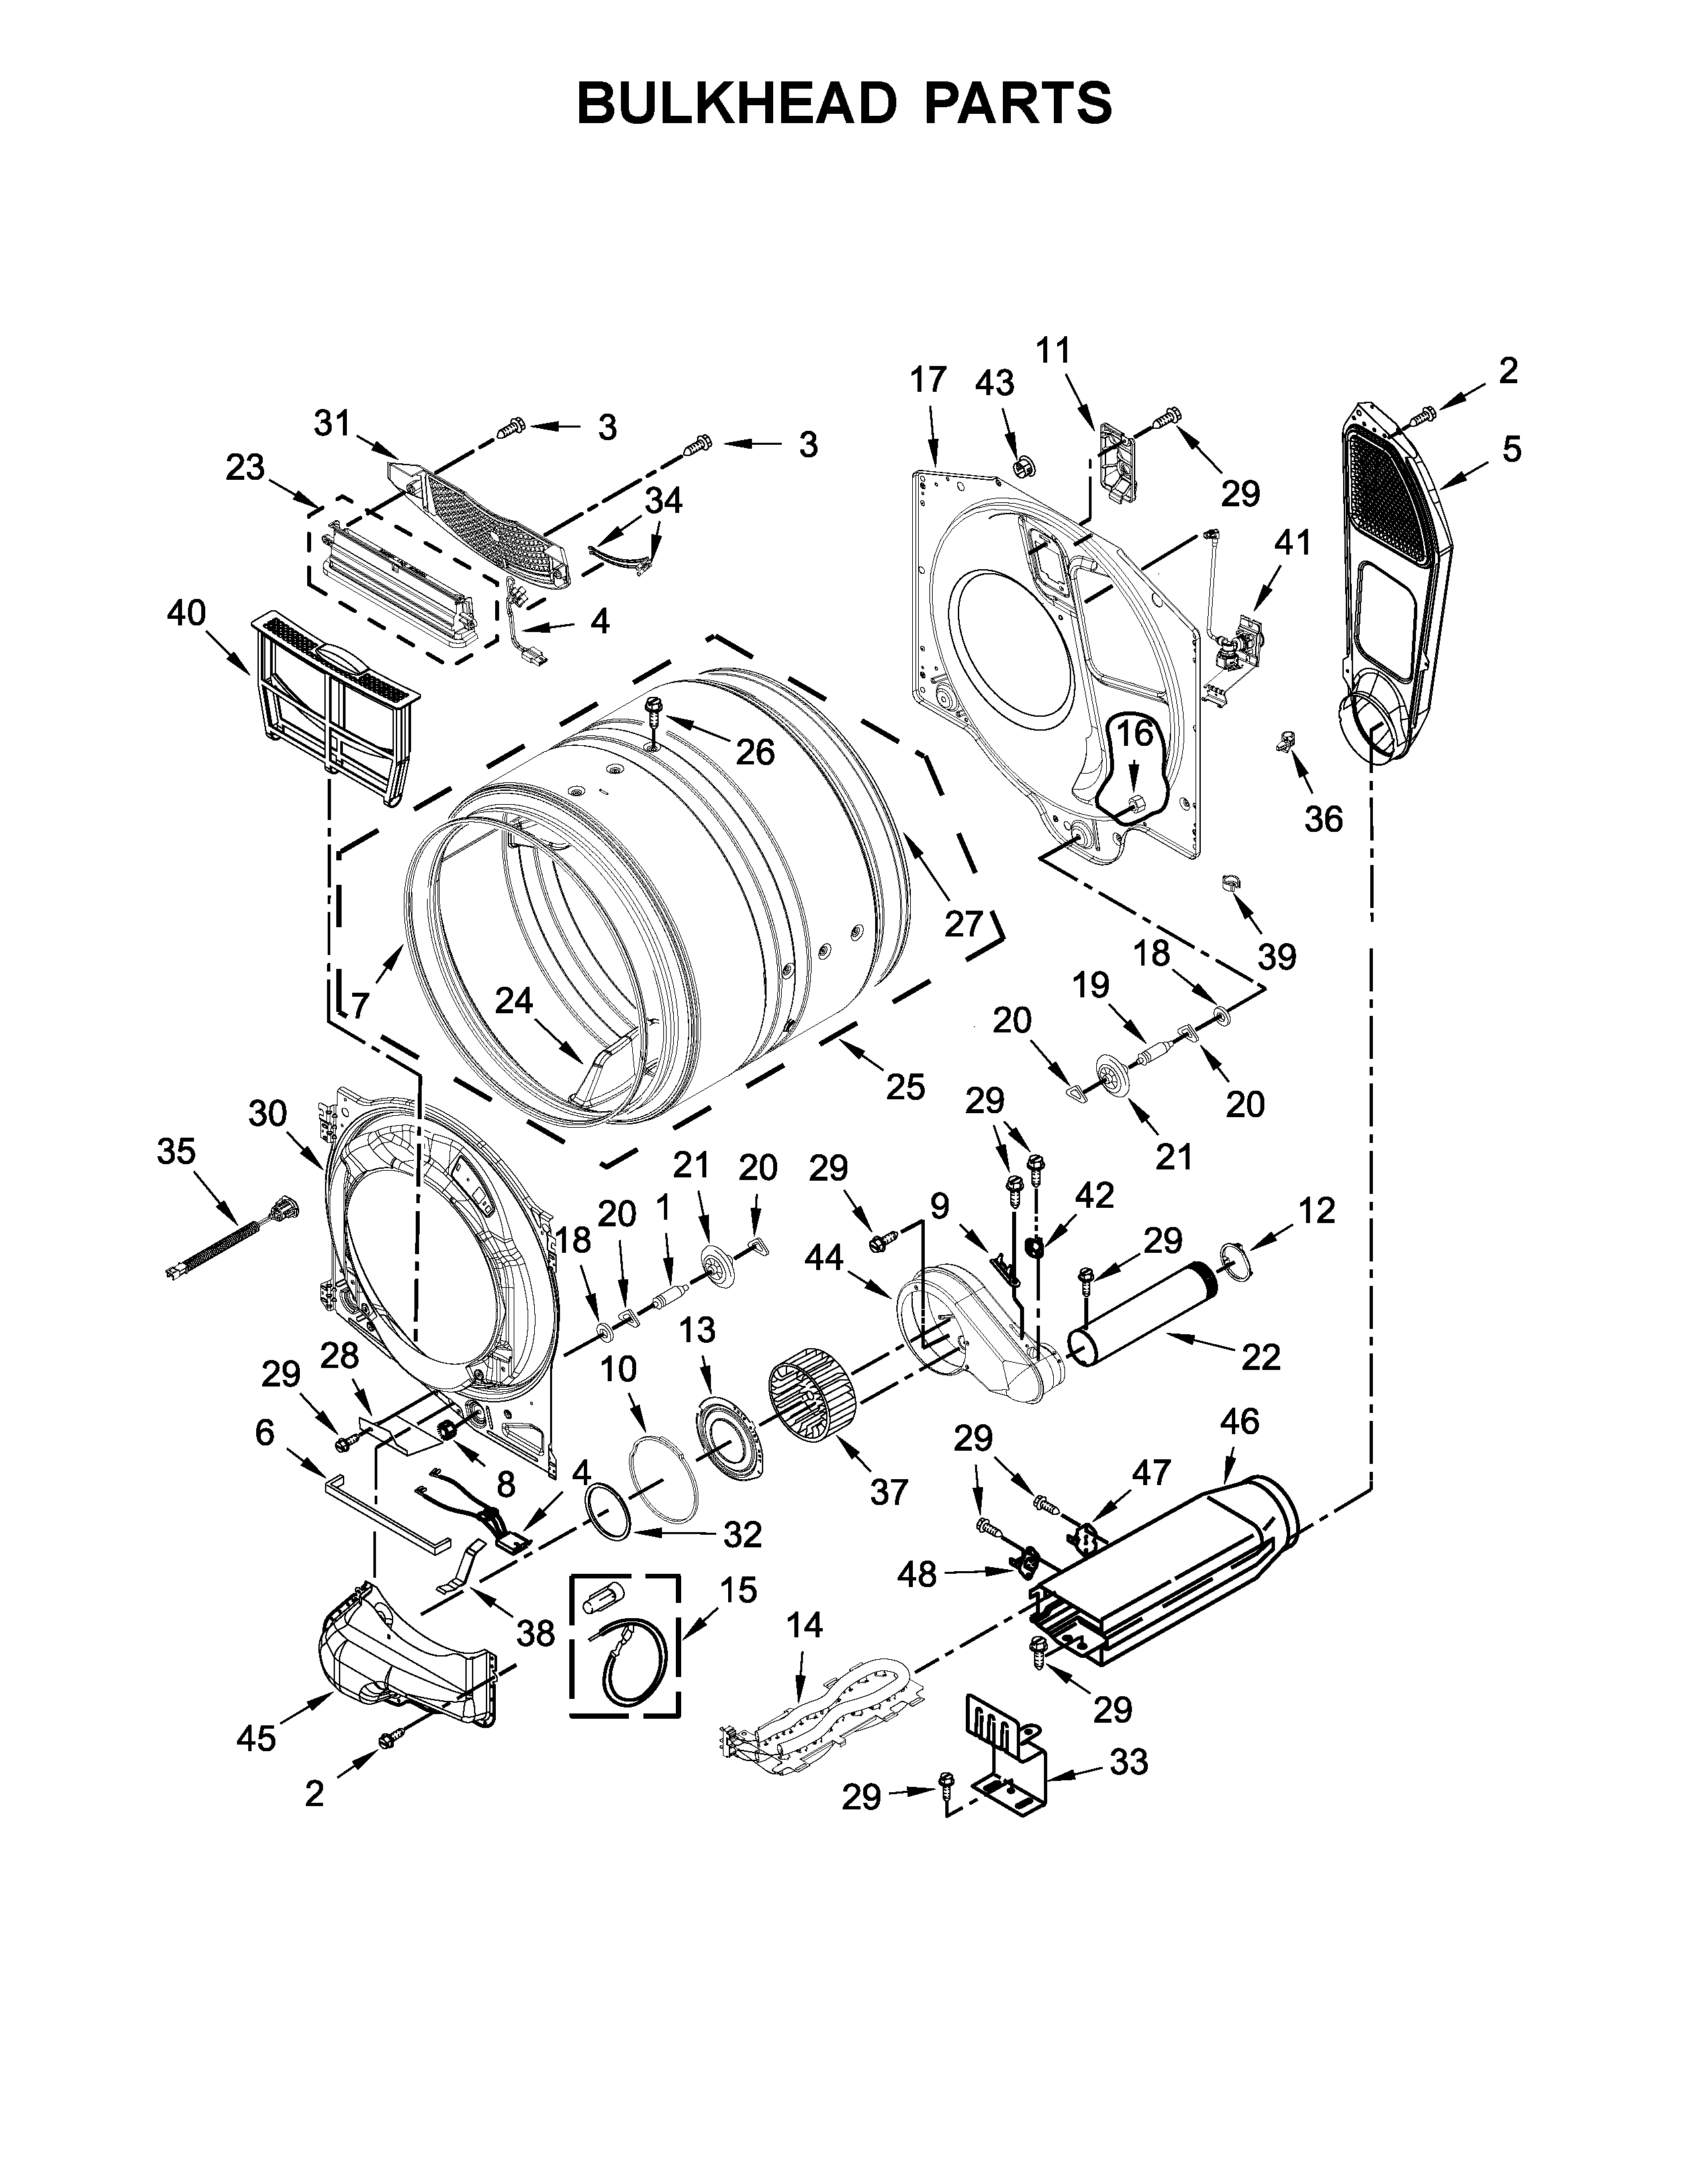 Maytag YMED8200FW1 bulkhead parts diagram